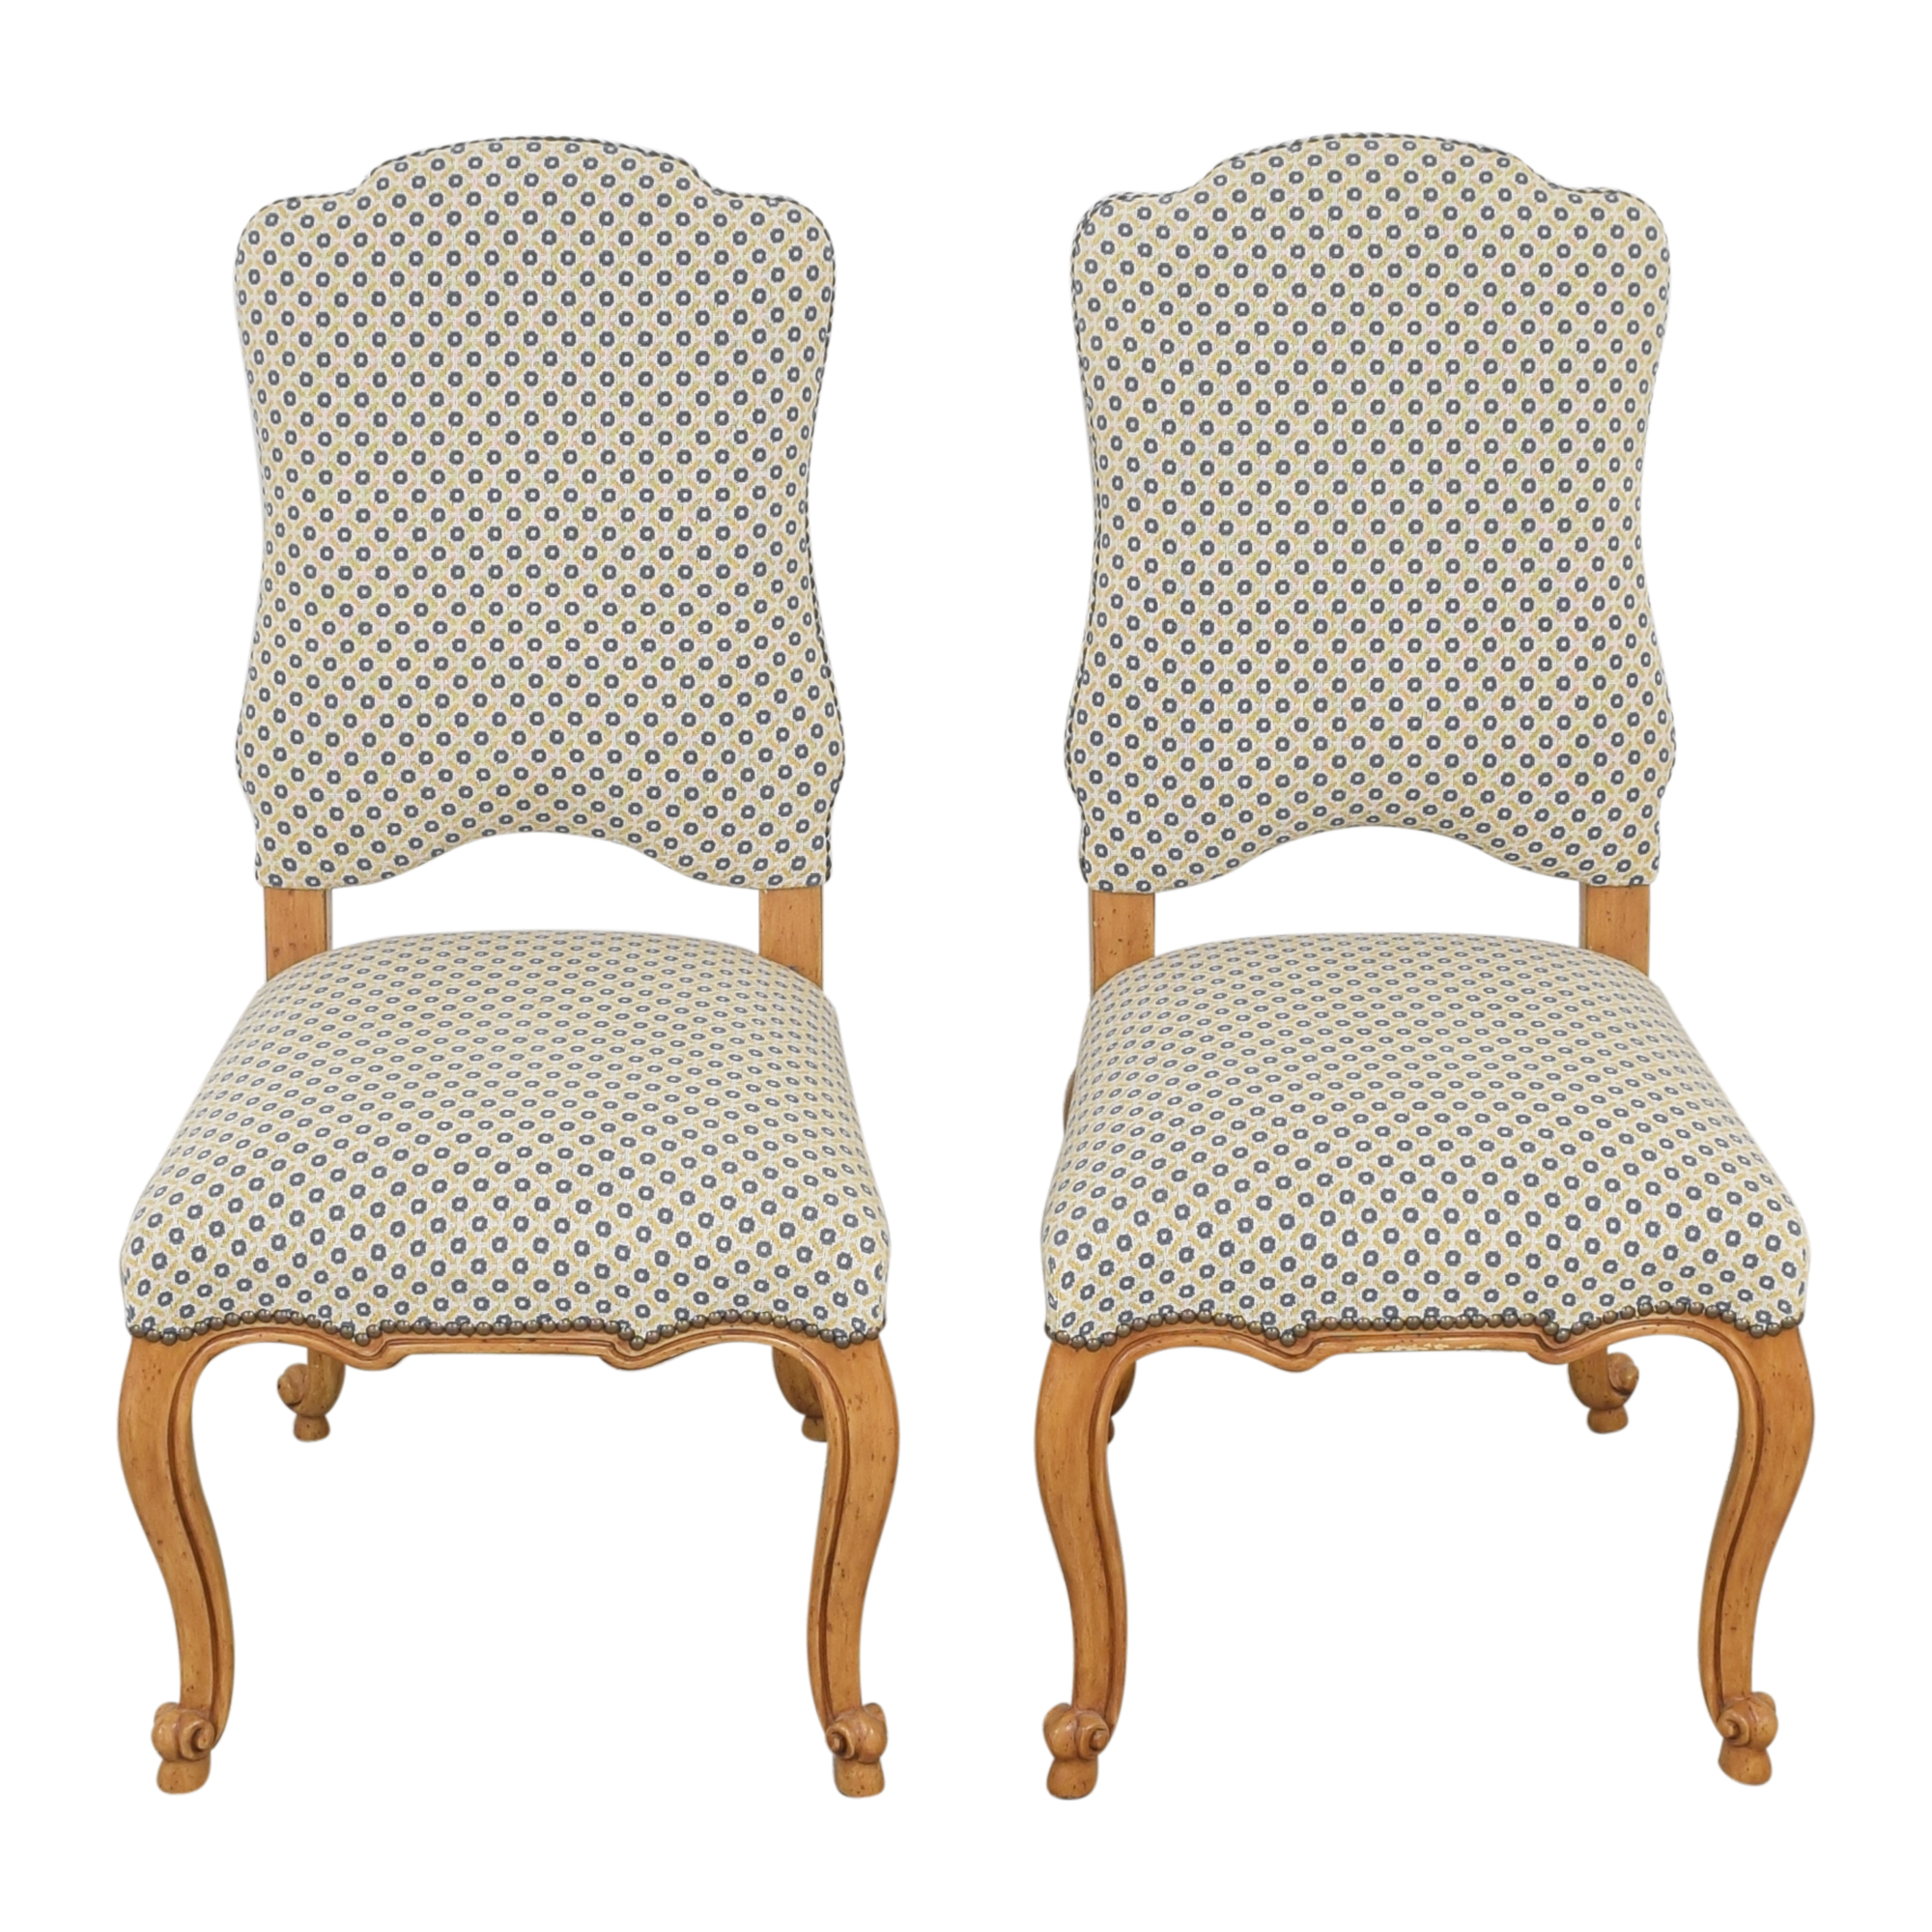 Minton-Spidell Minton-Spidell Regence Dining Side Chairs on sale